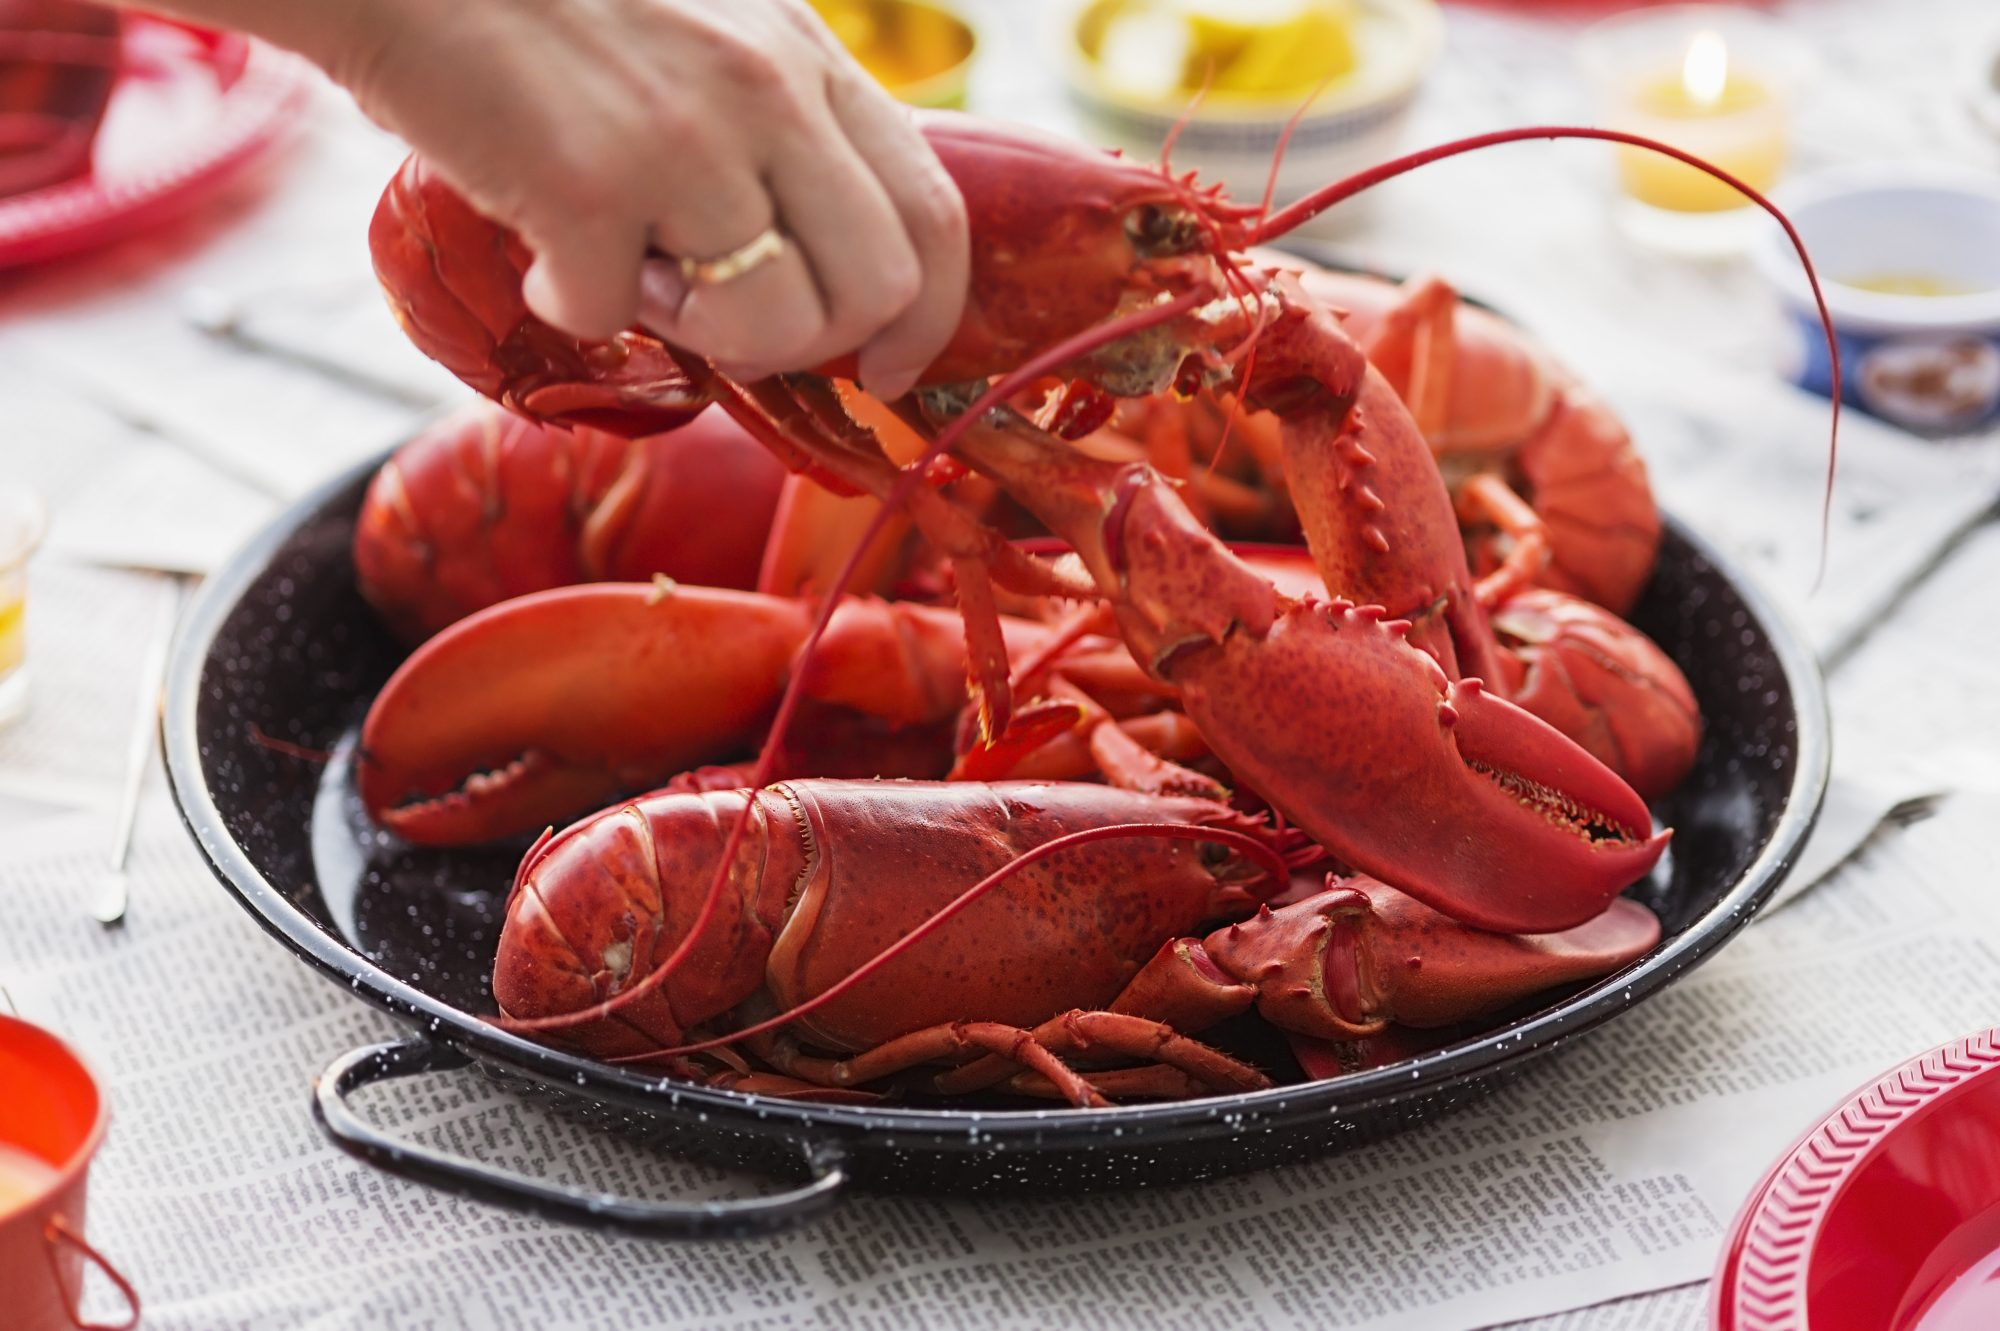 Getty Lobster Image